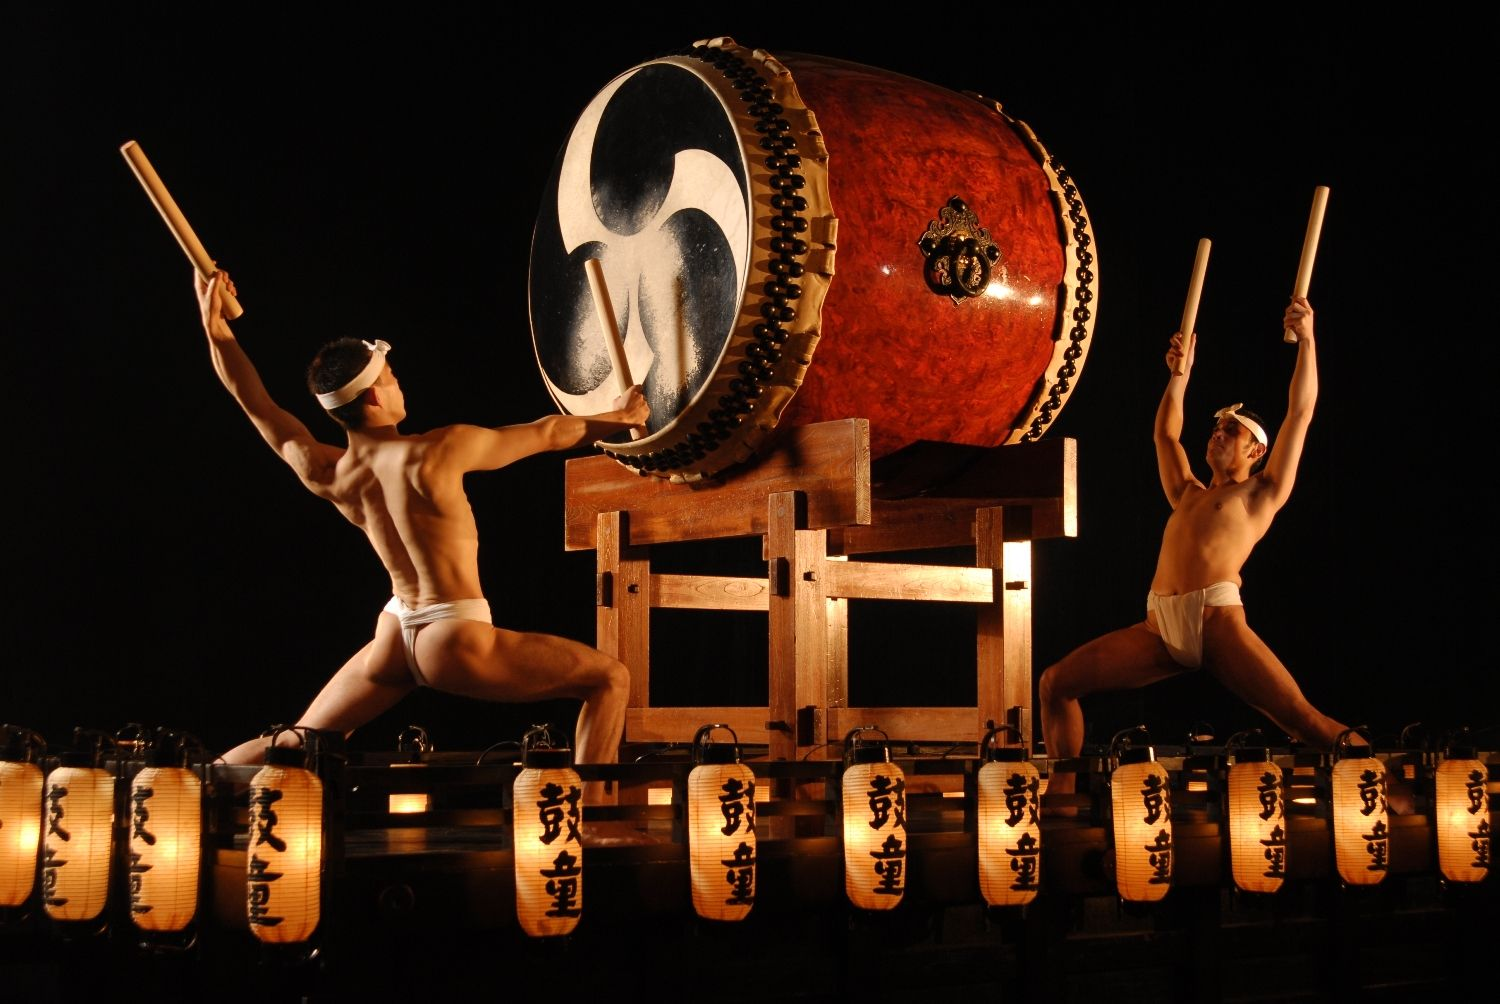 Japanese drummers.  These drummers are awesome!